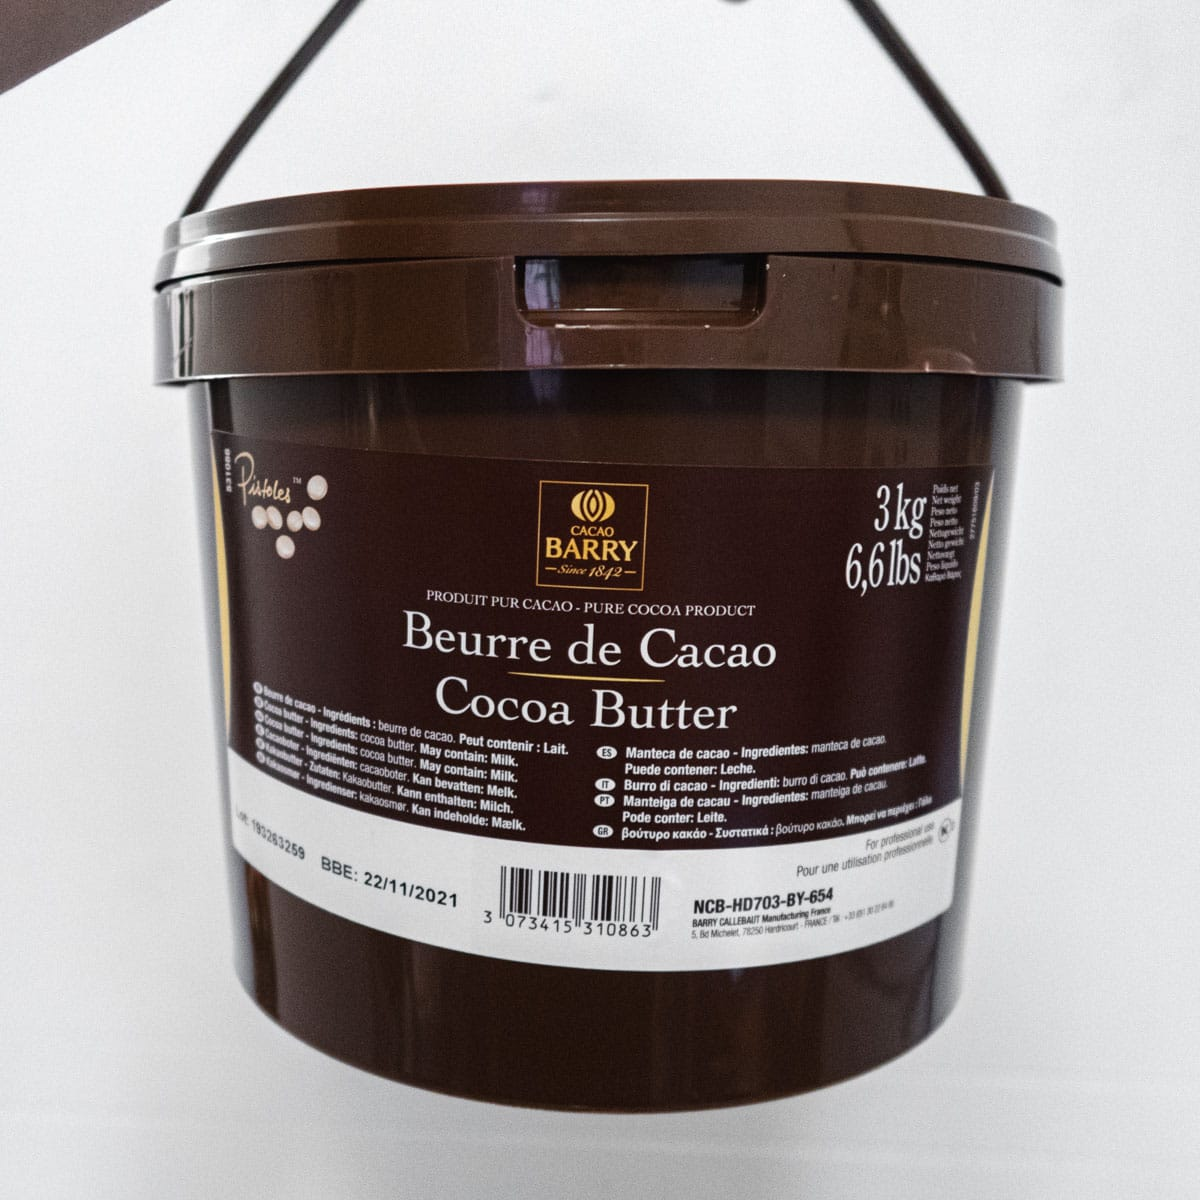 Cacao Barry cacao butter 3kg tub